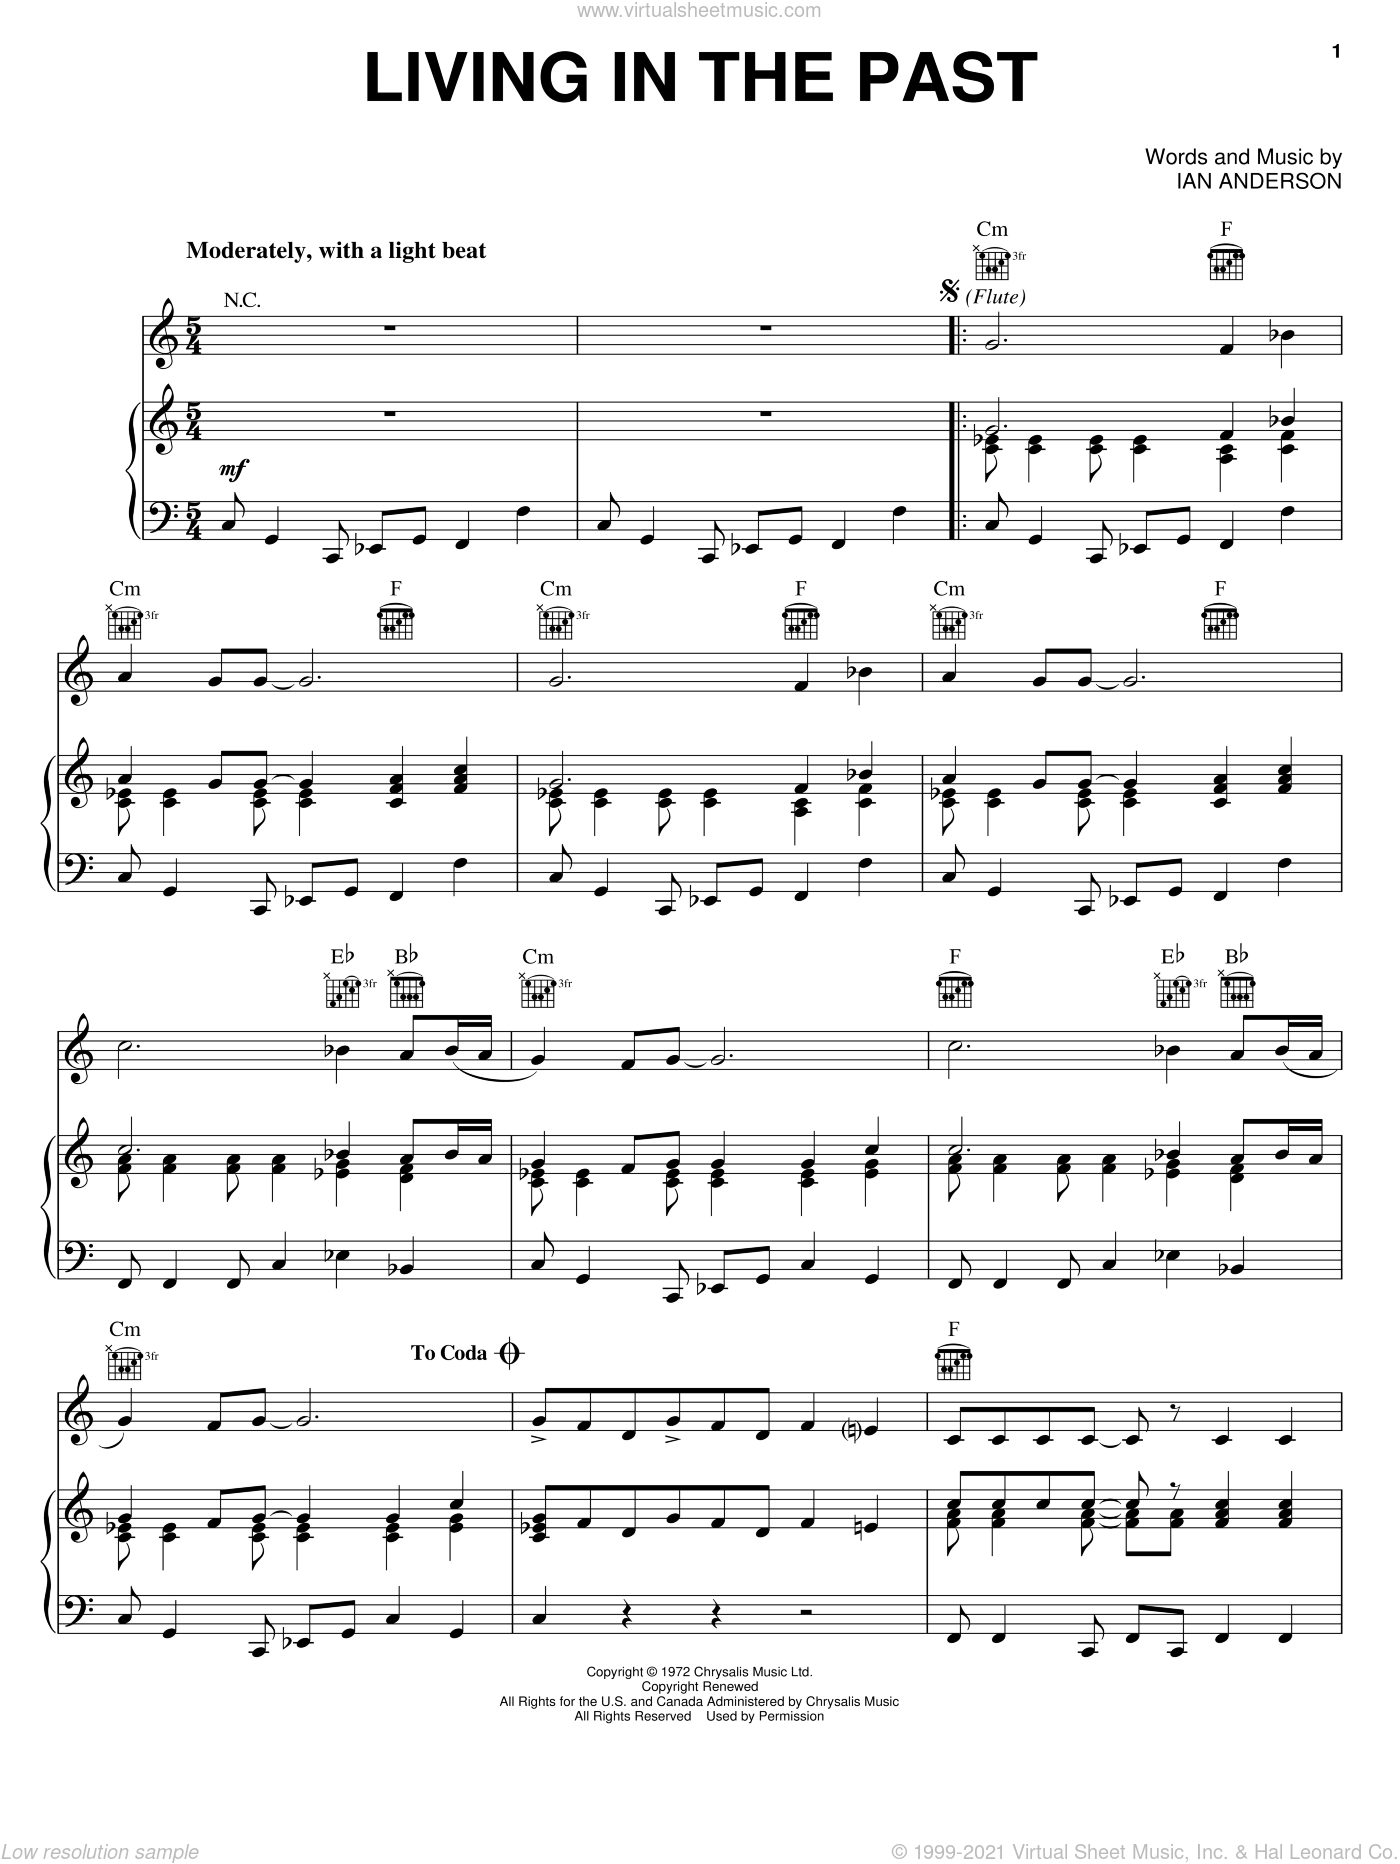 Living In The Past sheet music for voice, piano or guitar by Ian Anderson. Score Image Preview.